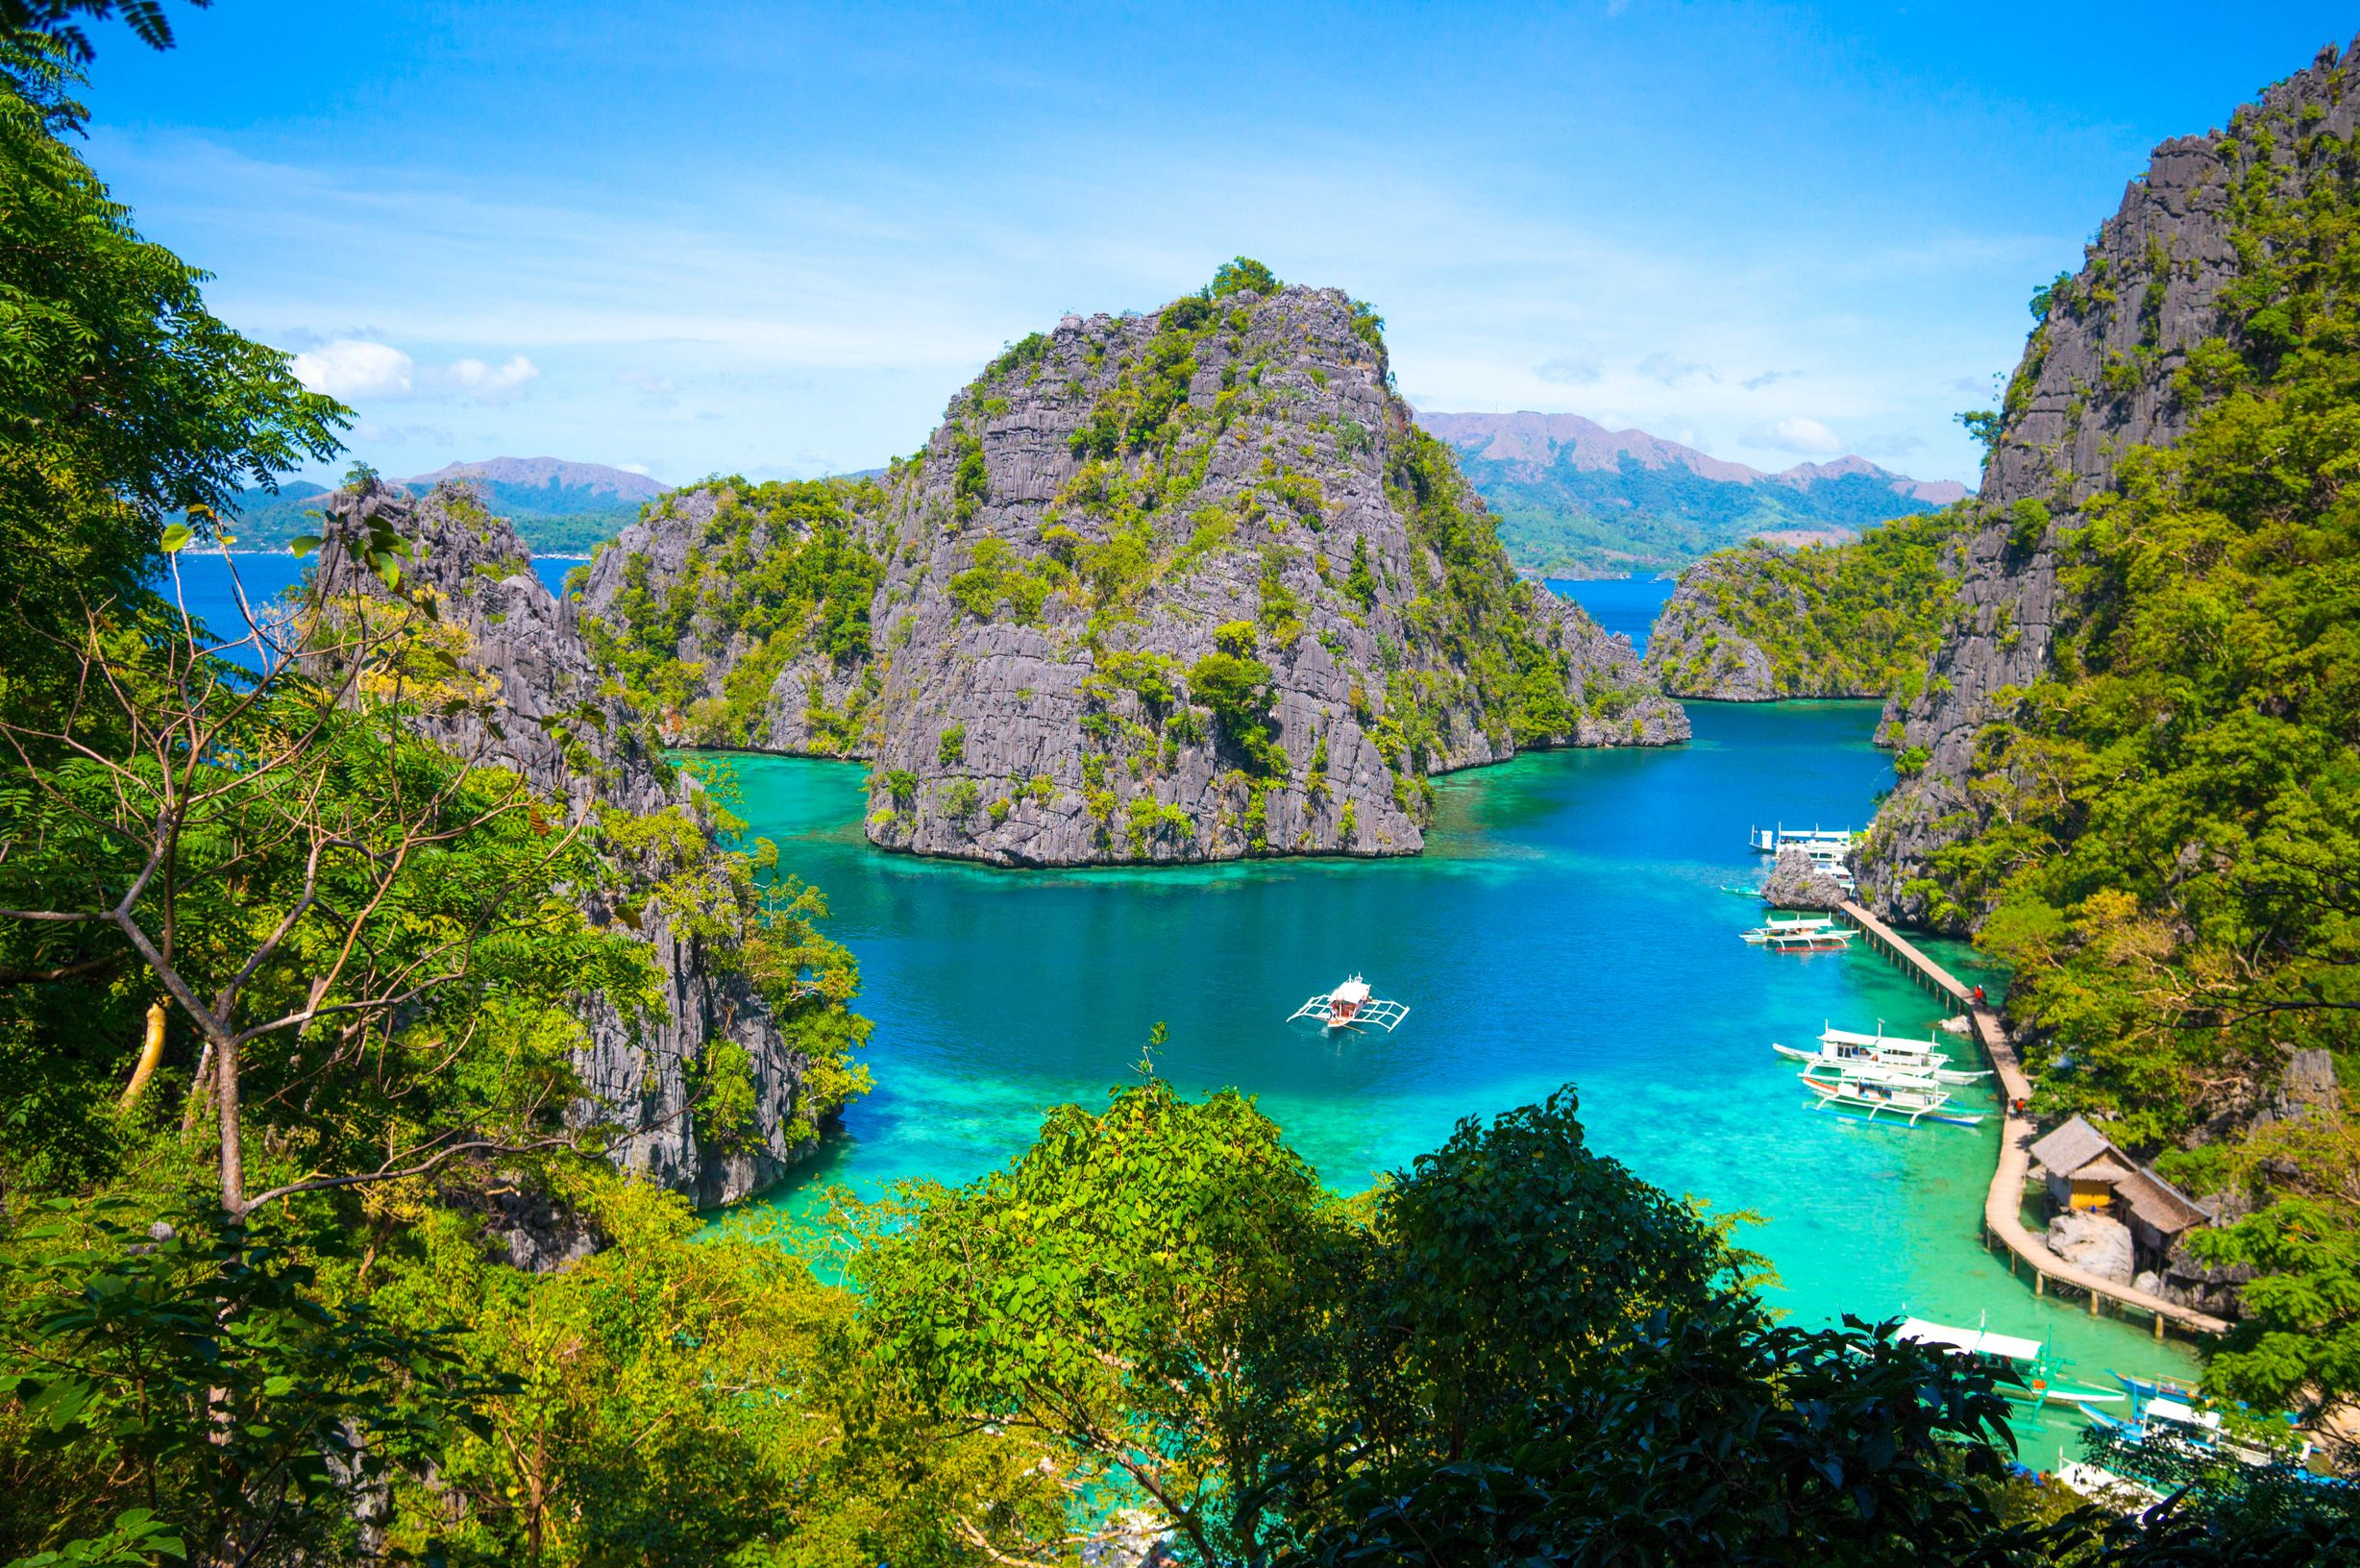 Crystalline bay surrounded by limestone cliffs overhung with vegetation beneath a blue sky in Coron, one of the most amazing places to visit in the Philippines